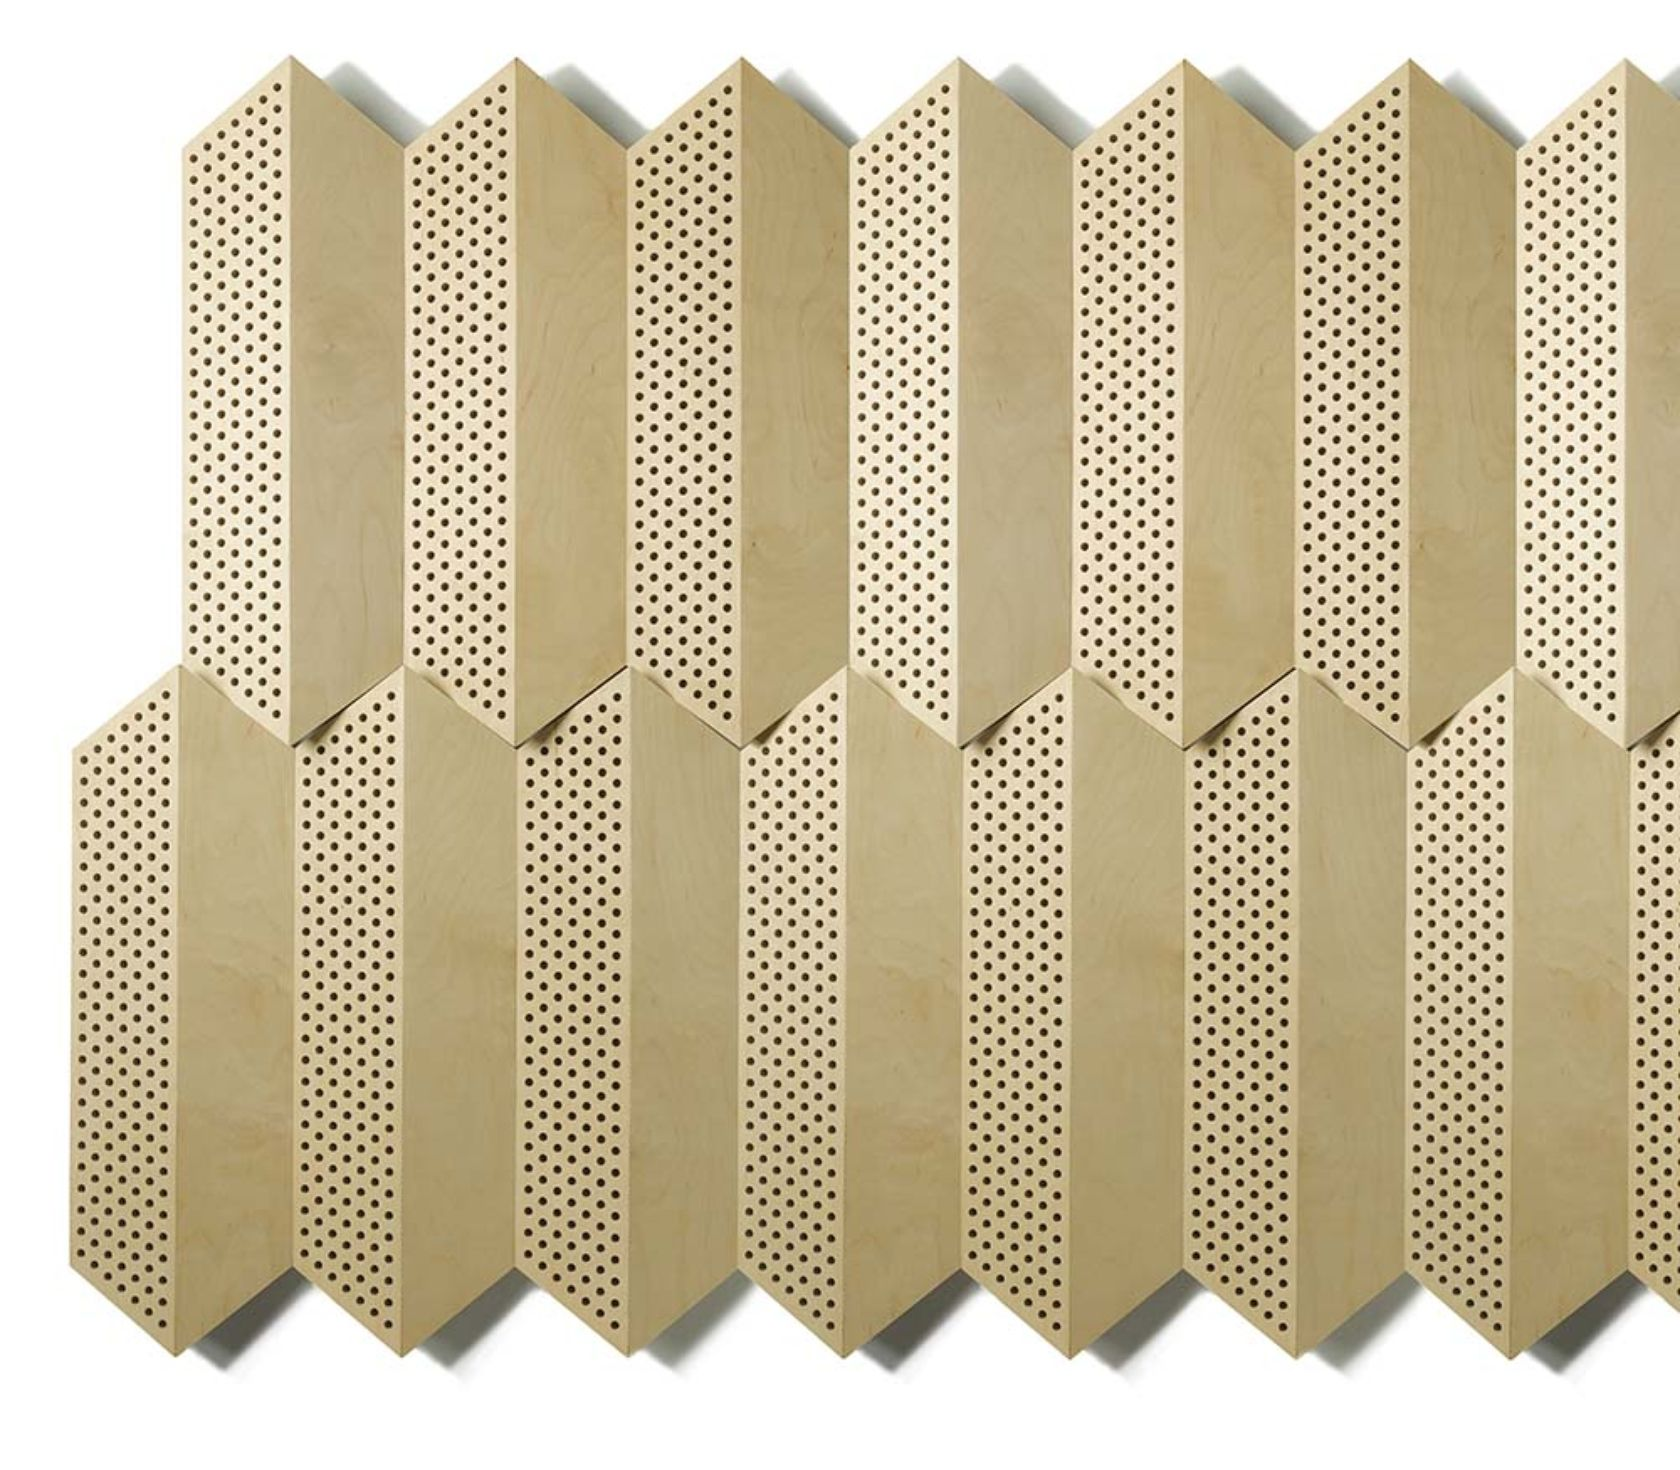 Tessellate acoustic wall panel system … | quilters design wall ...